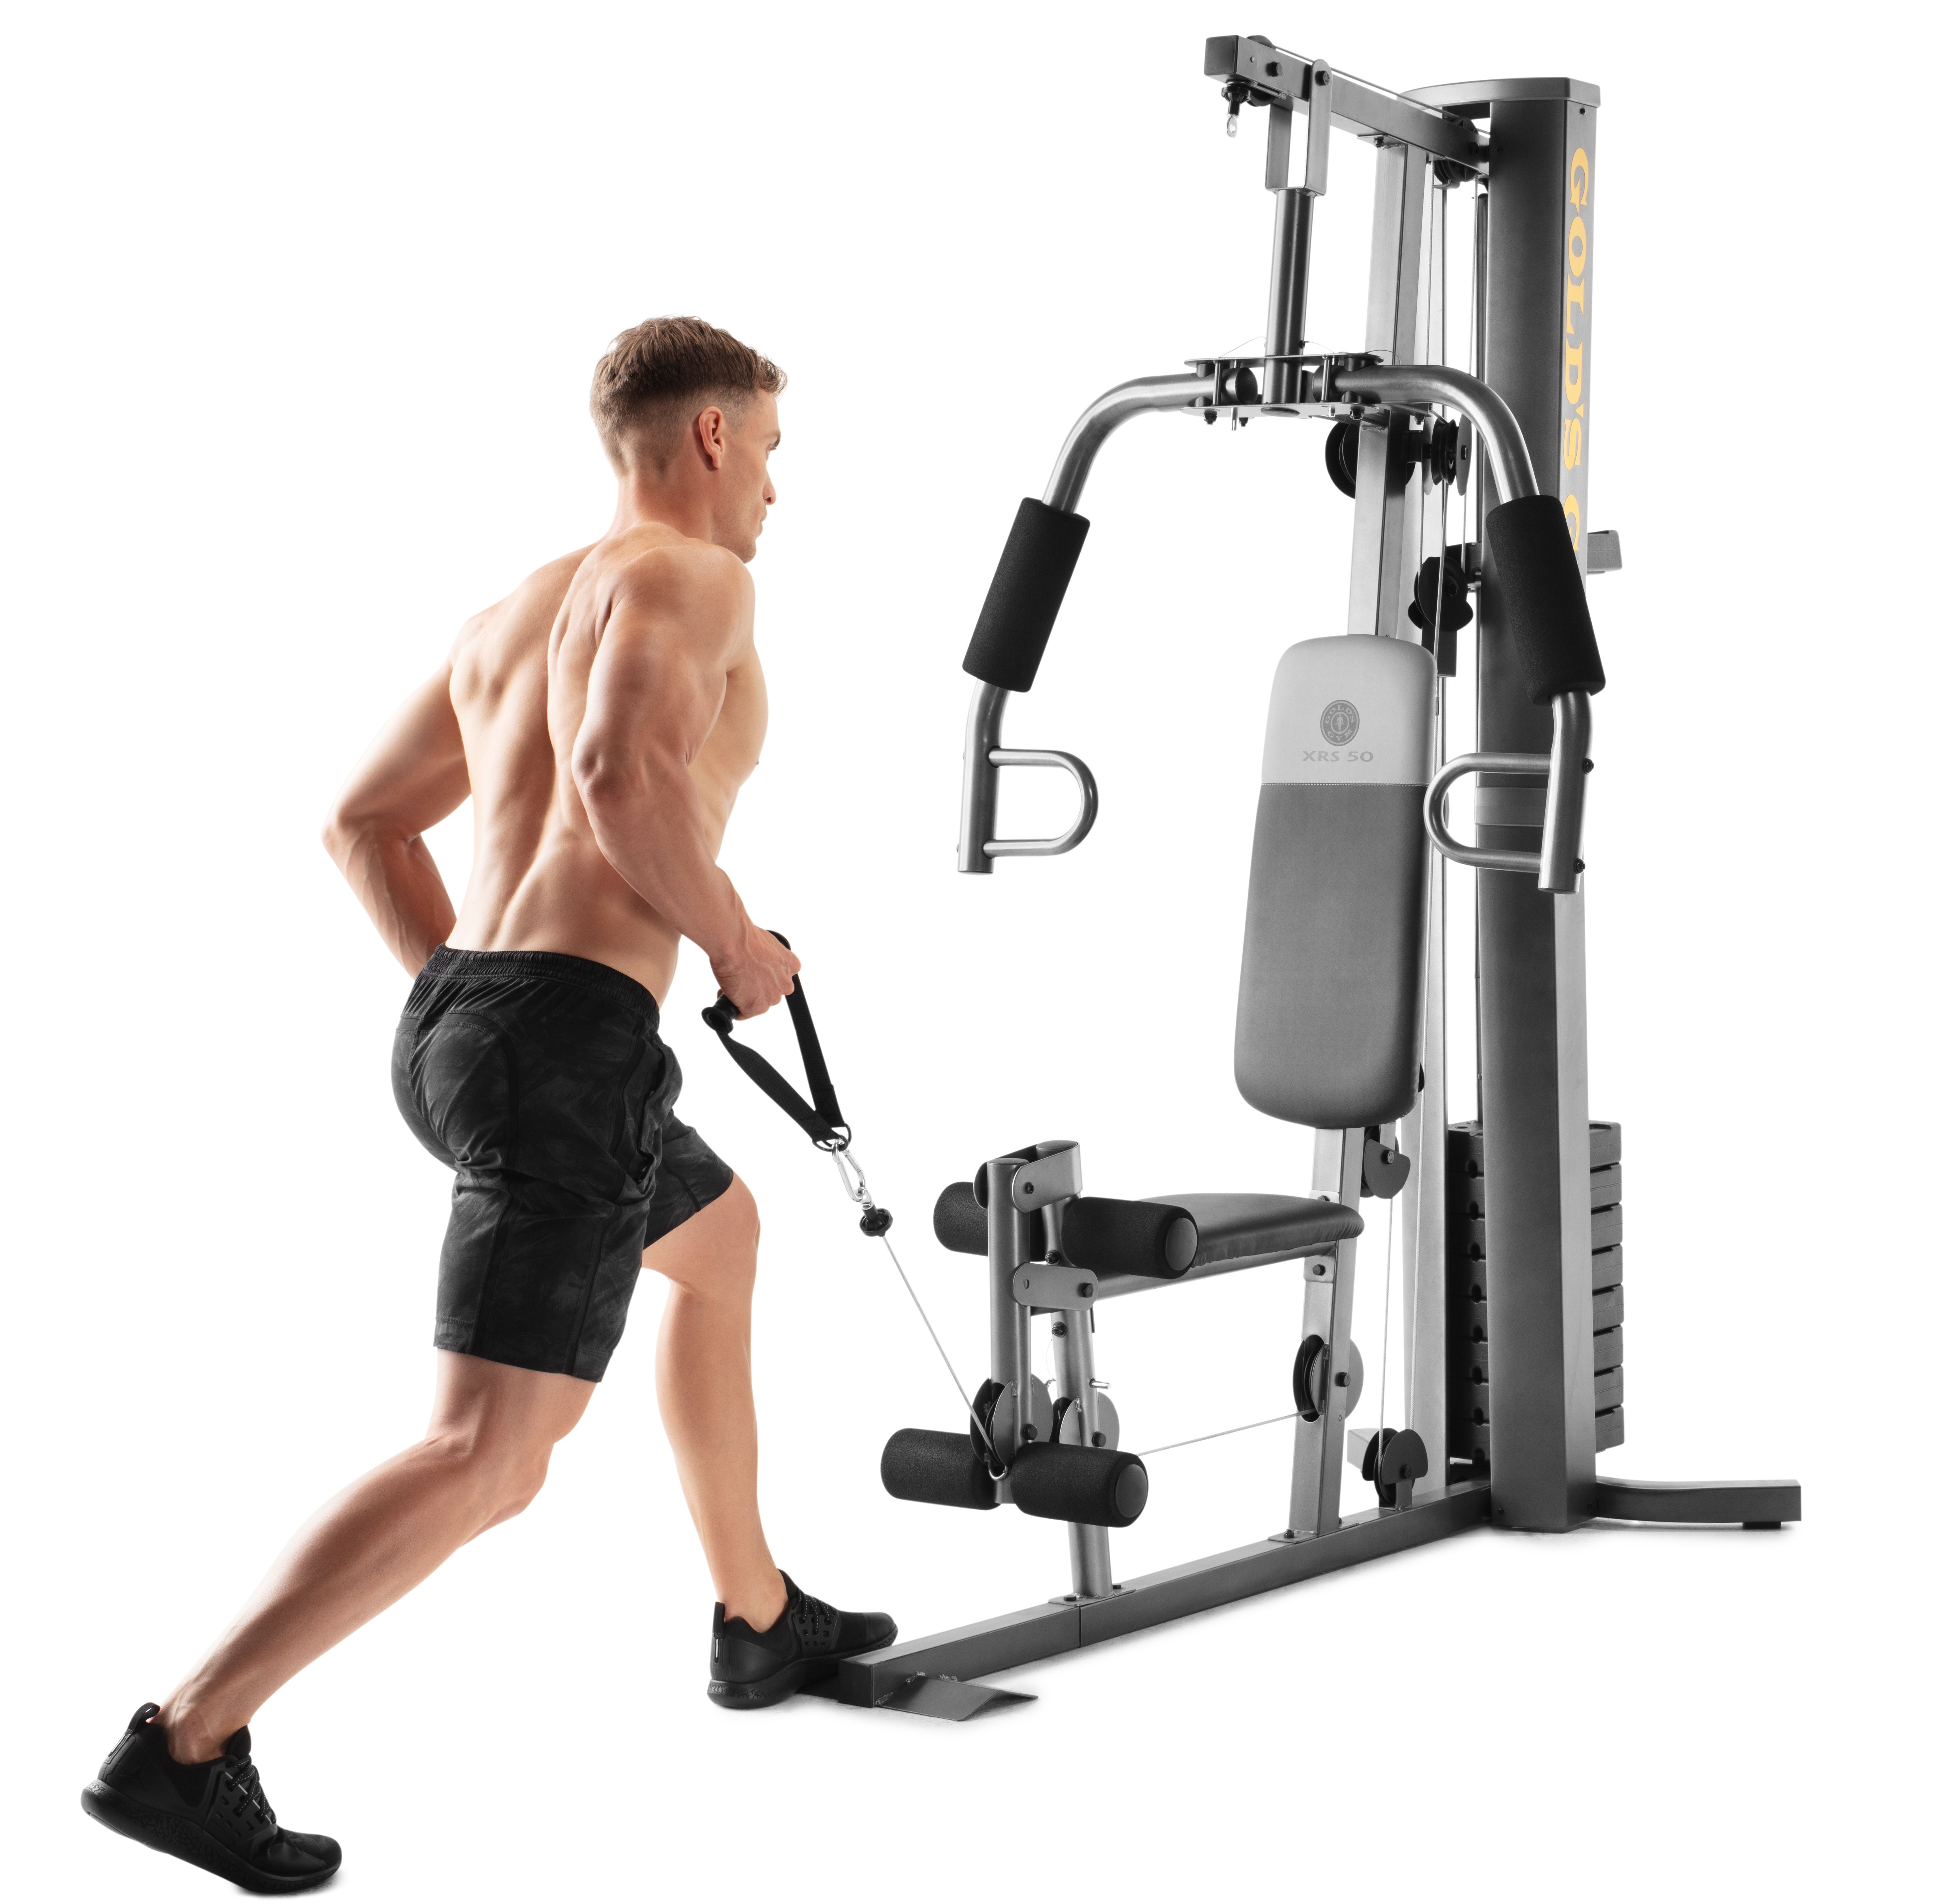 Weider Xrs 50 Home Gym With 112 Lb Vinyl Weight Stack Walmart Com Workout Machines Strength Training Workouts Home Strength Training